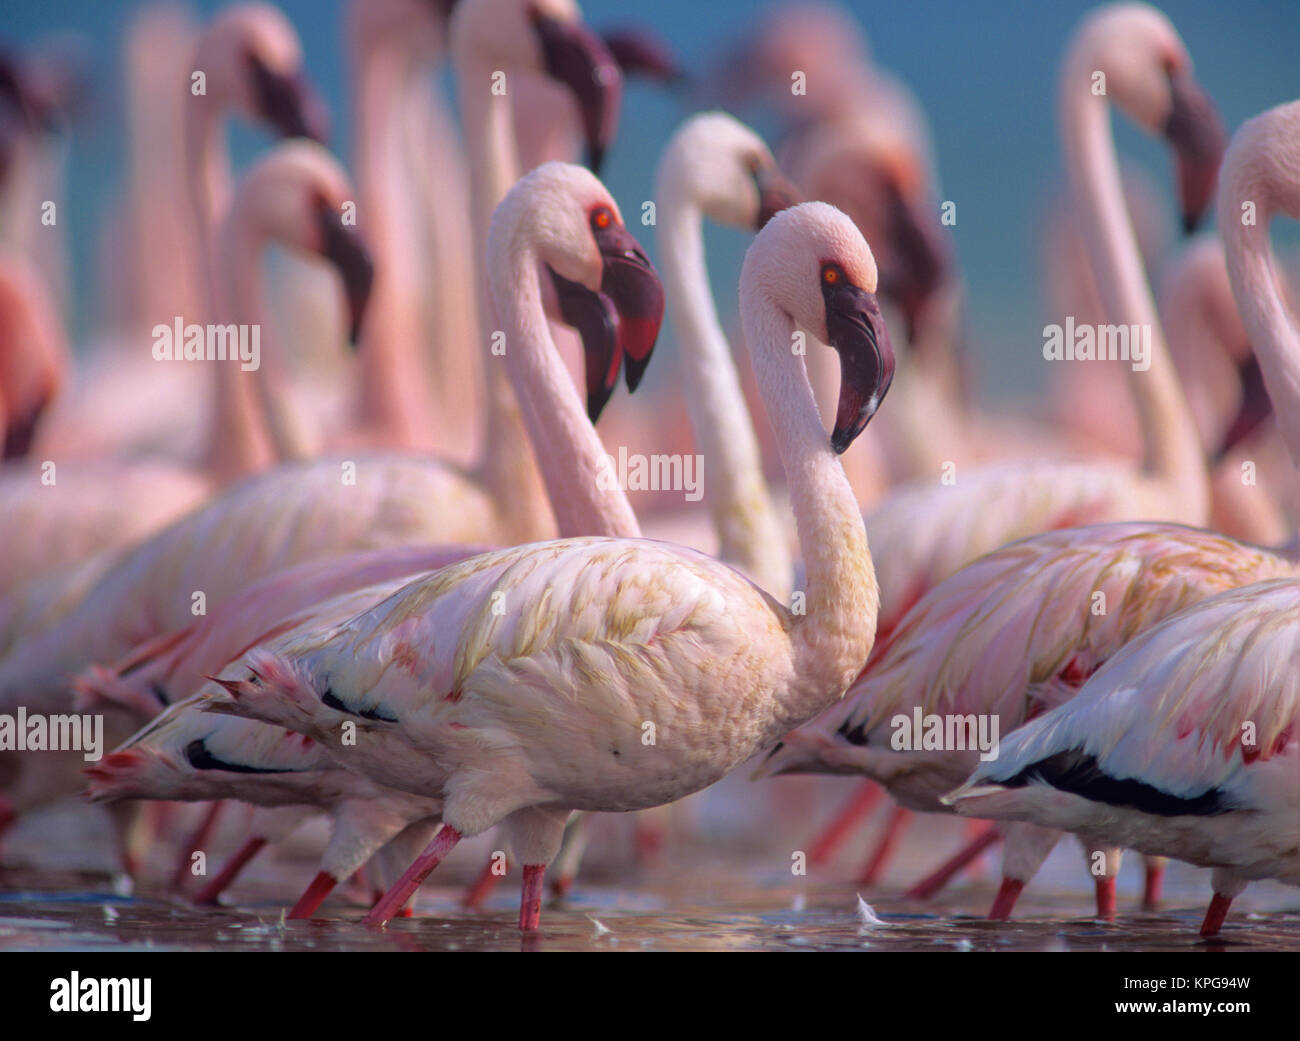 Groupe des moindres flamants rose (Phoeniconaias minor), Kenya, Africa Photo Stock